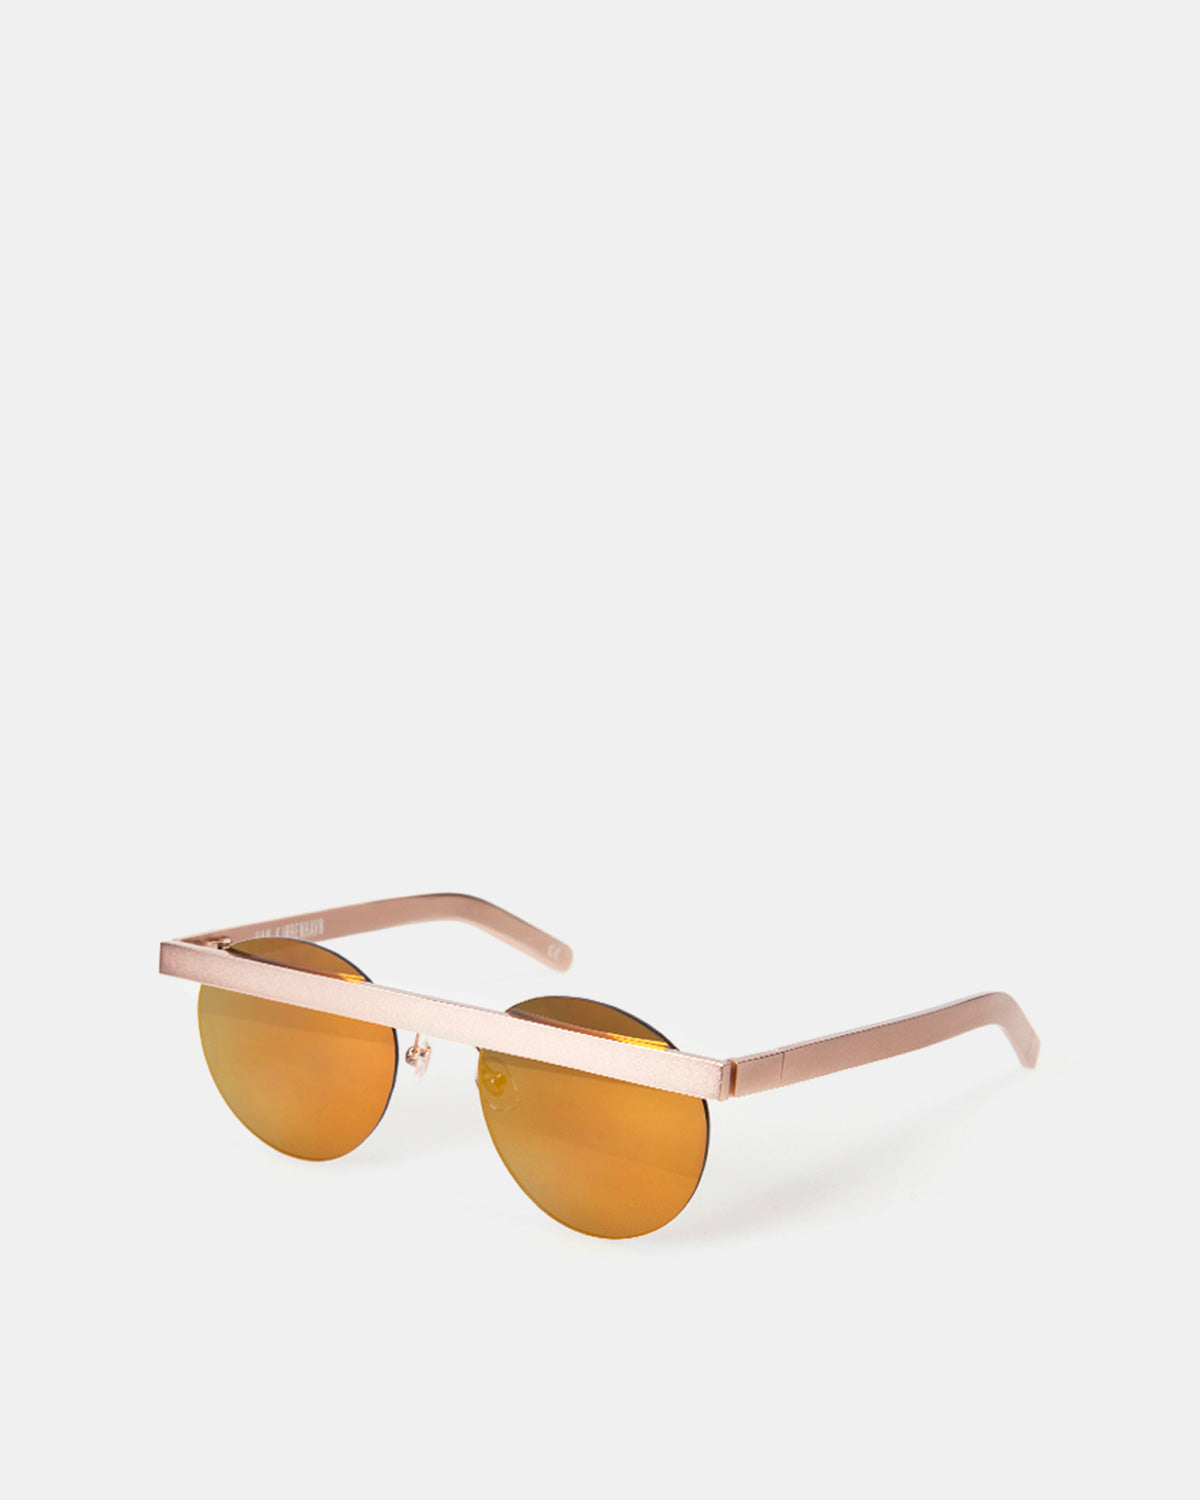 Han Kjobenhavn - Stable Sunglasses (Gold)